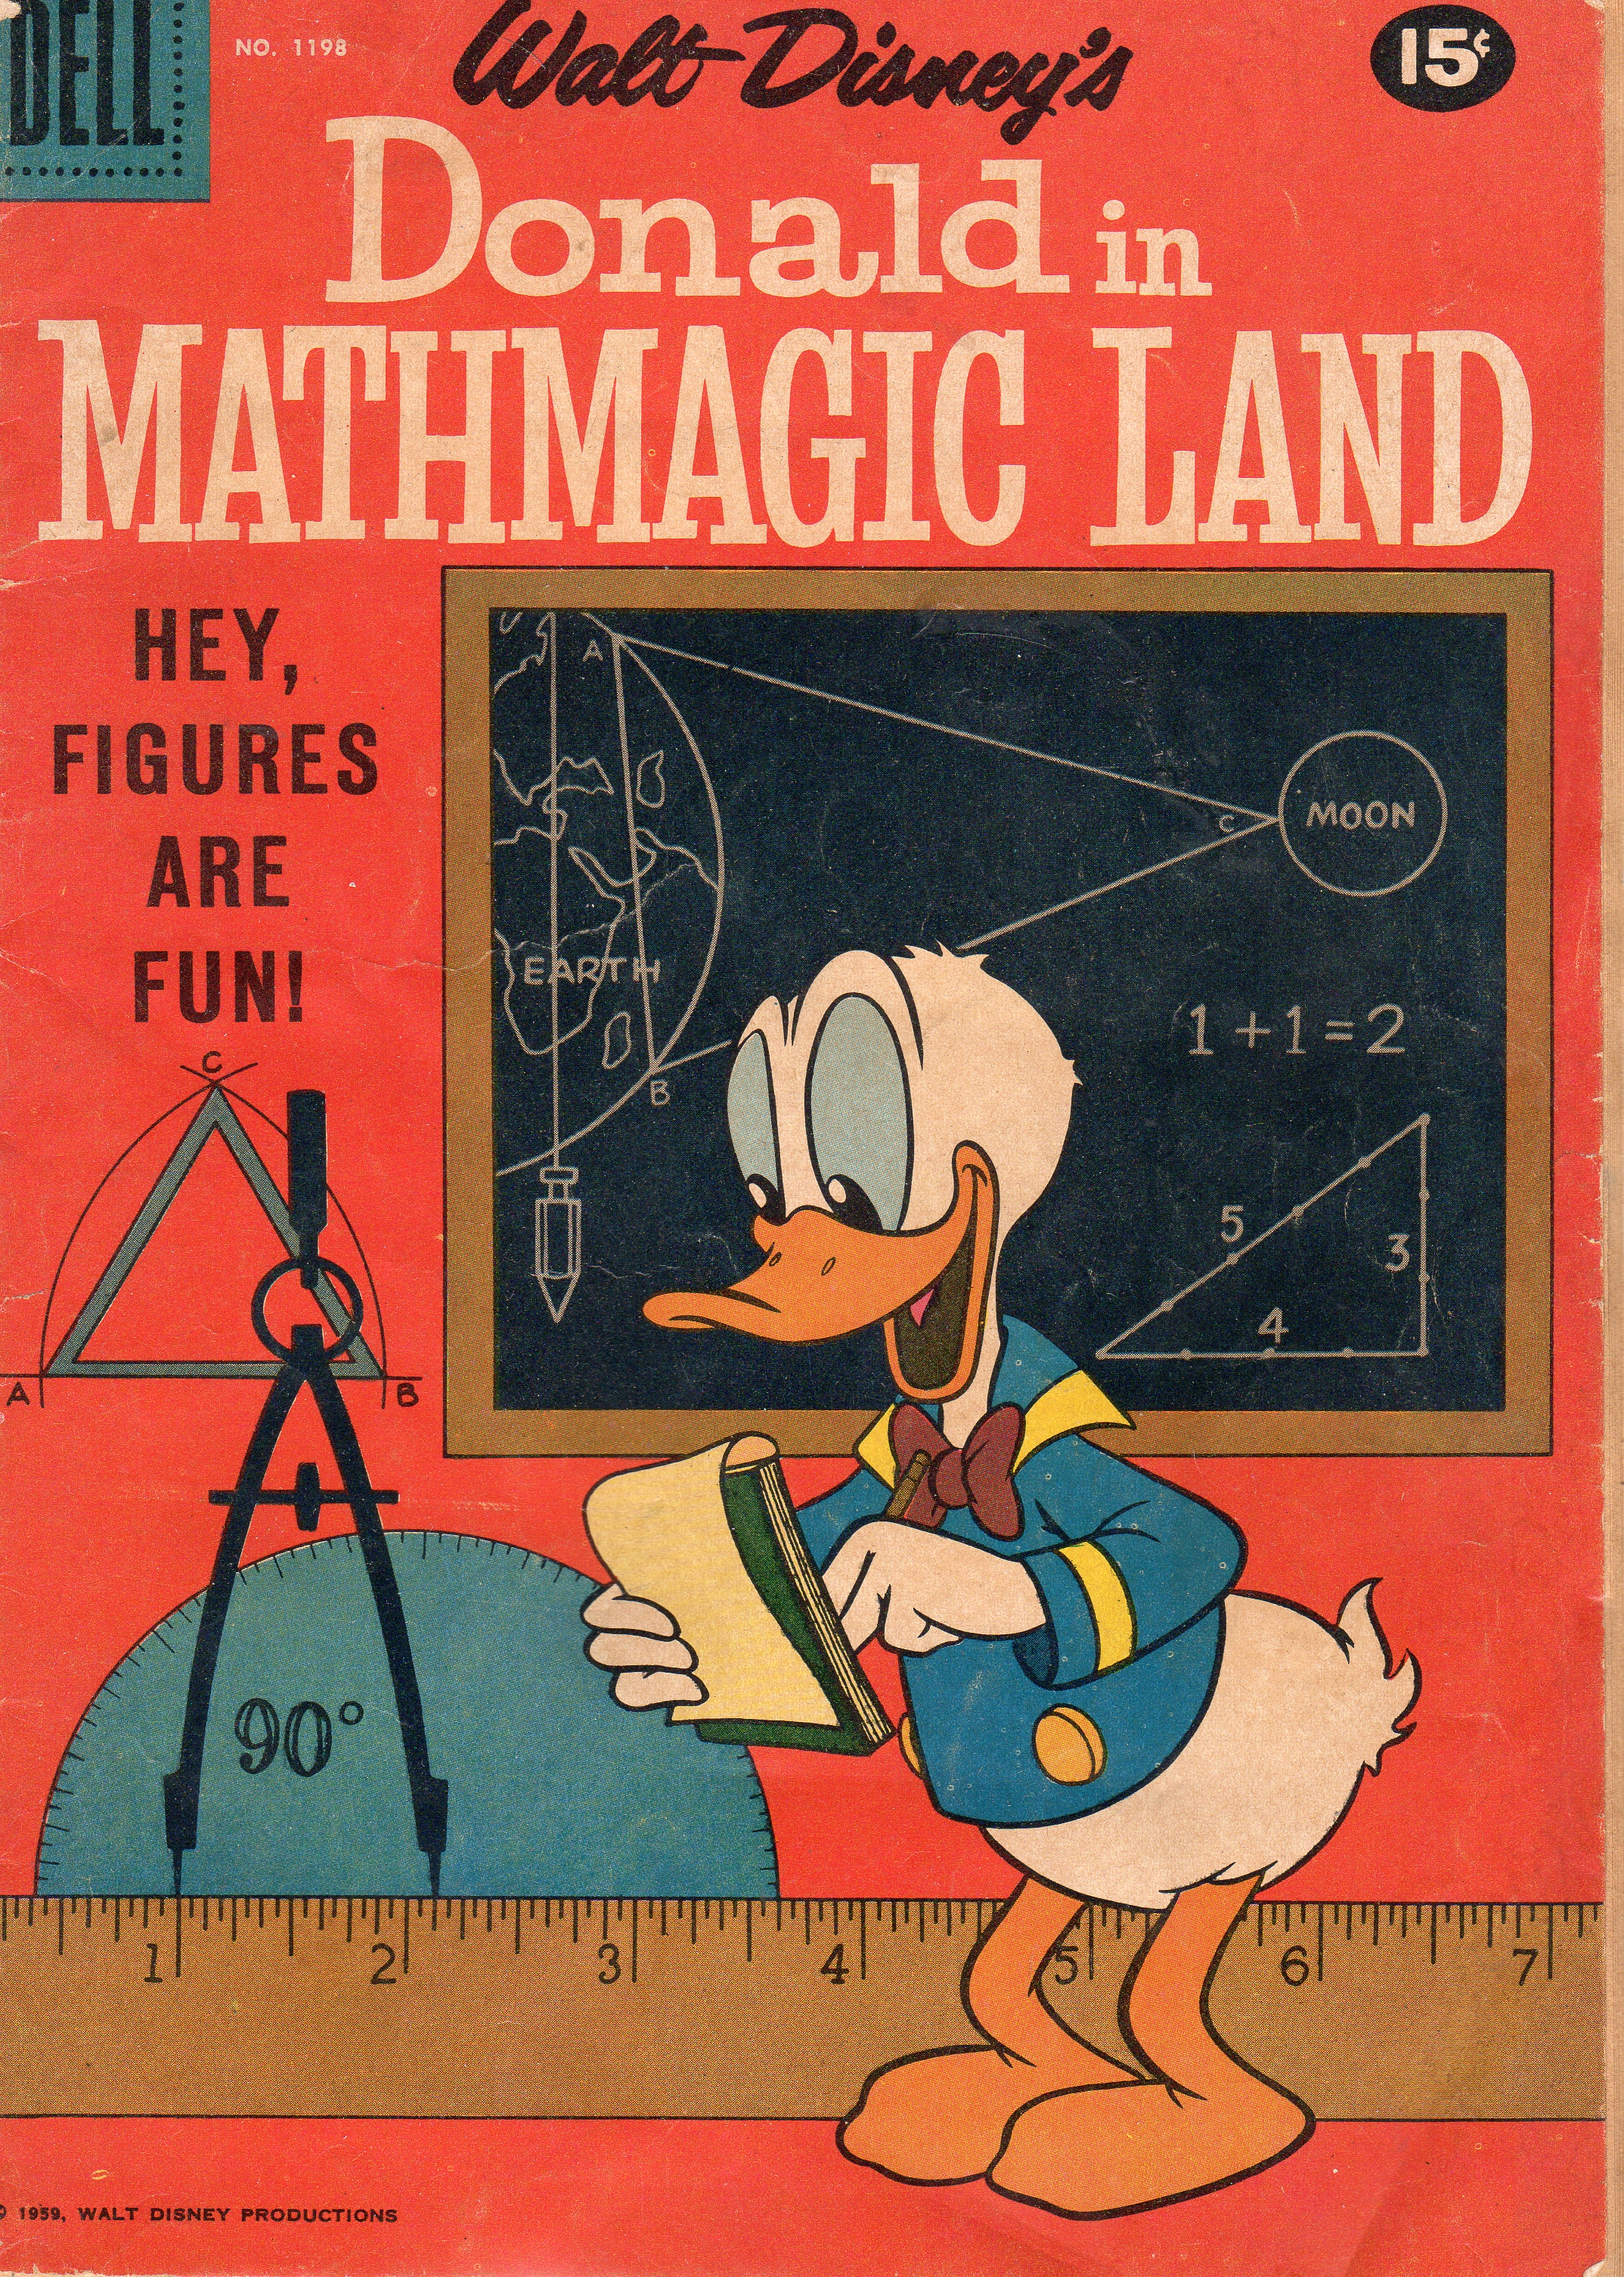 Printables Donald In Mathmagic Land Worksheet the copacetic comics company franksantoro donald duck in mathmagic land